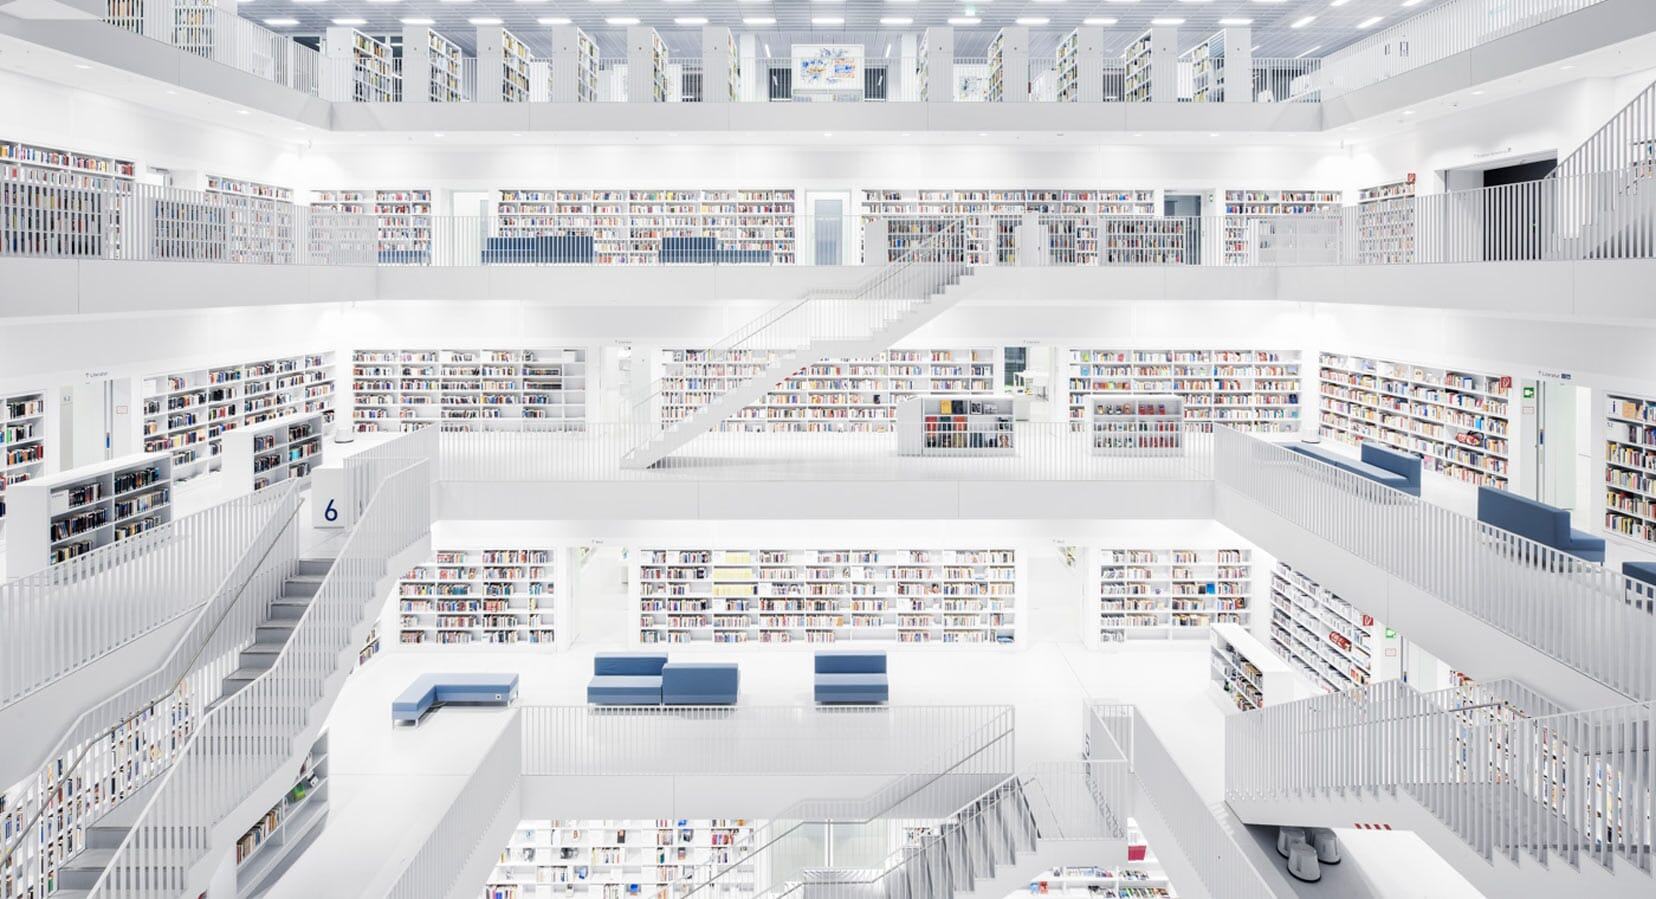 A Look Inside Europe's Most Spectacular Libraries With Photographer Thibaud Poirier